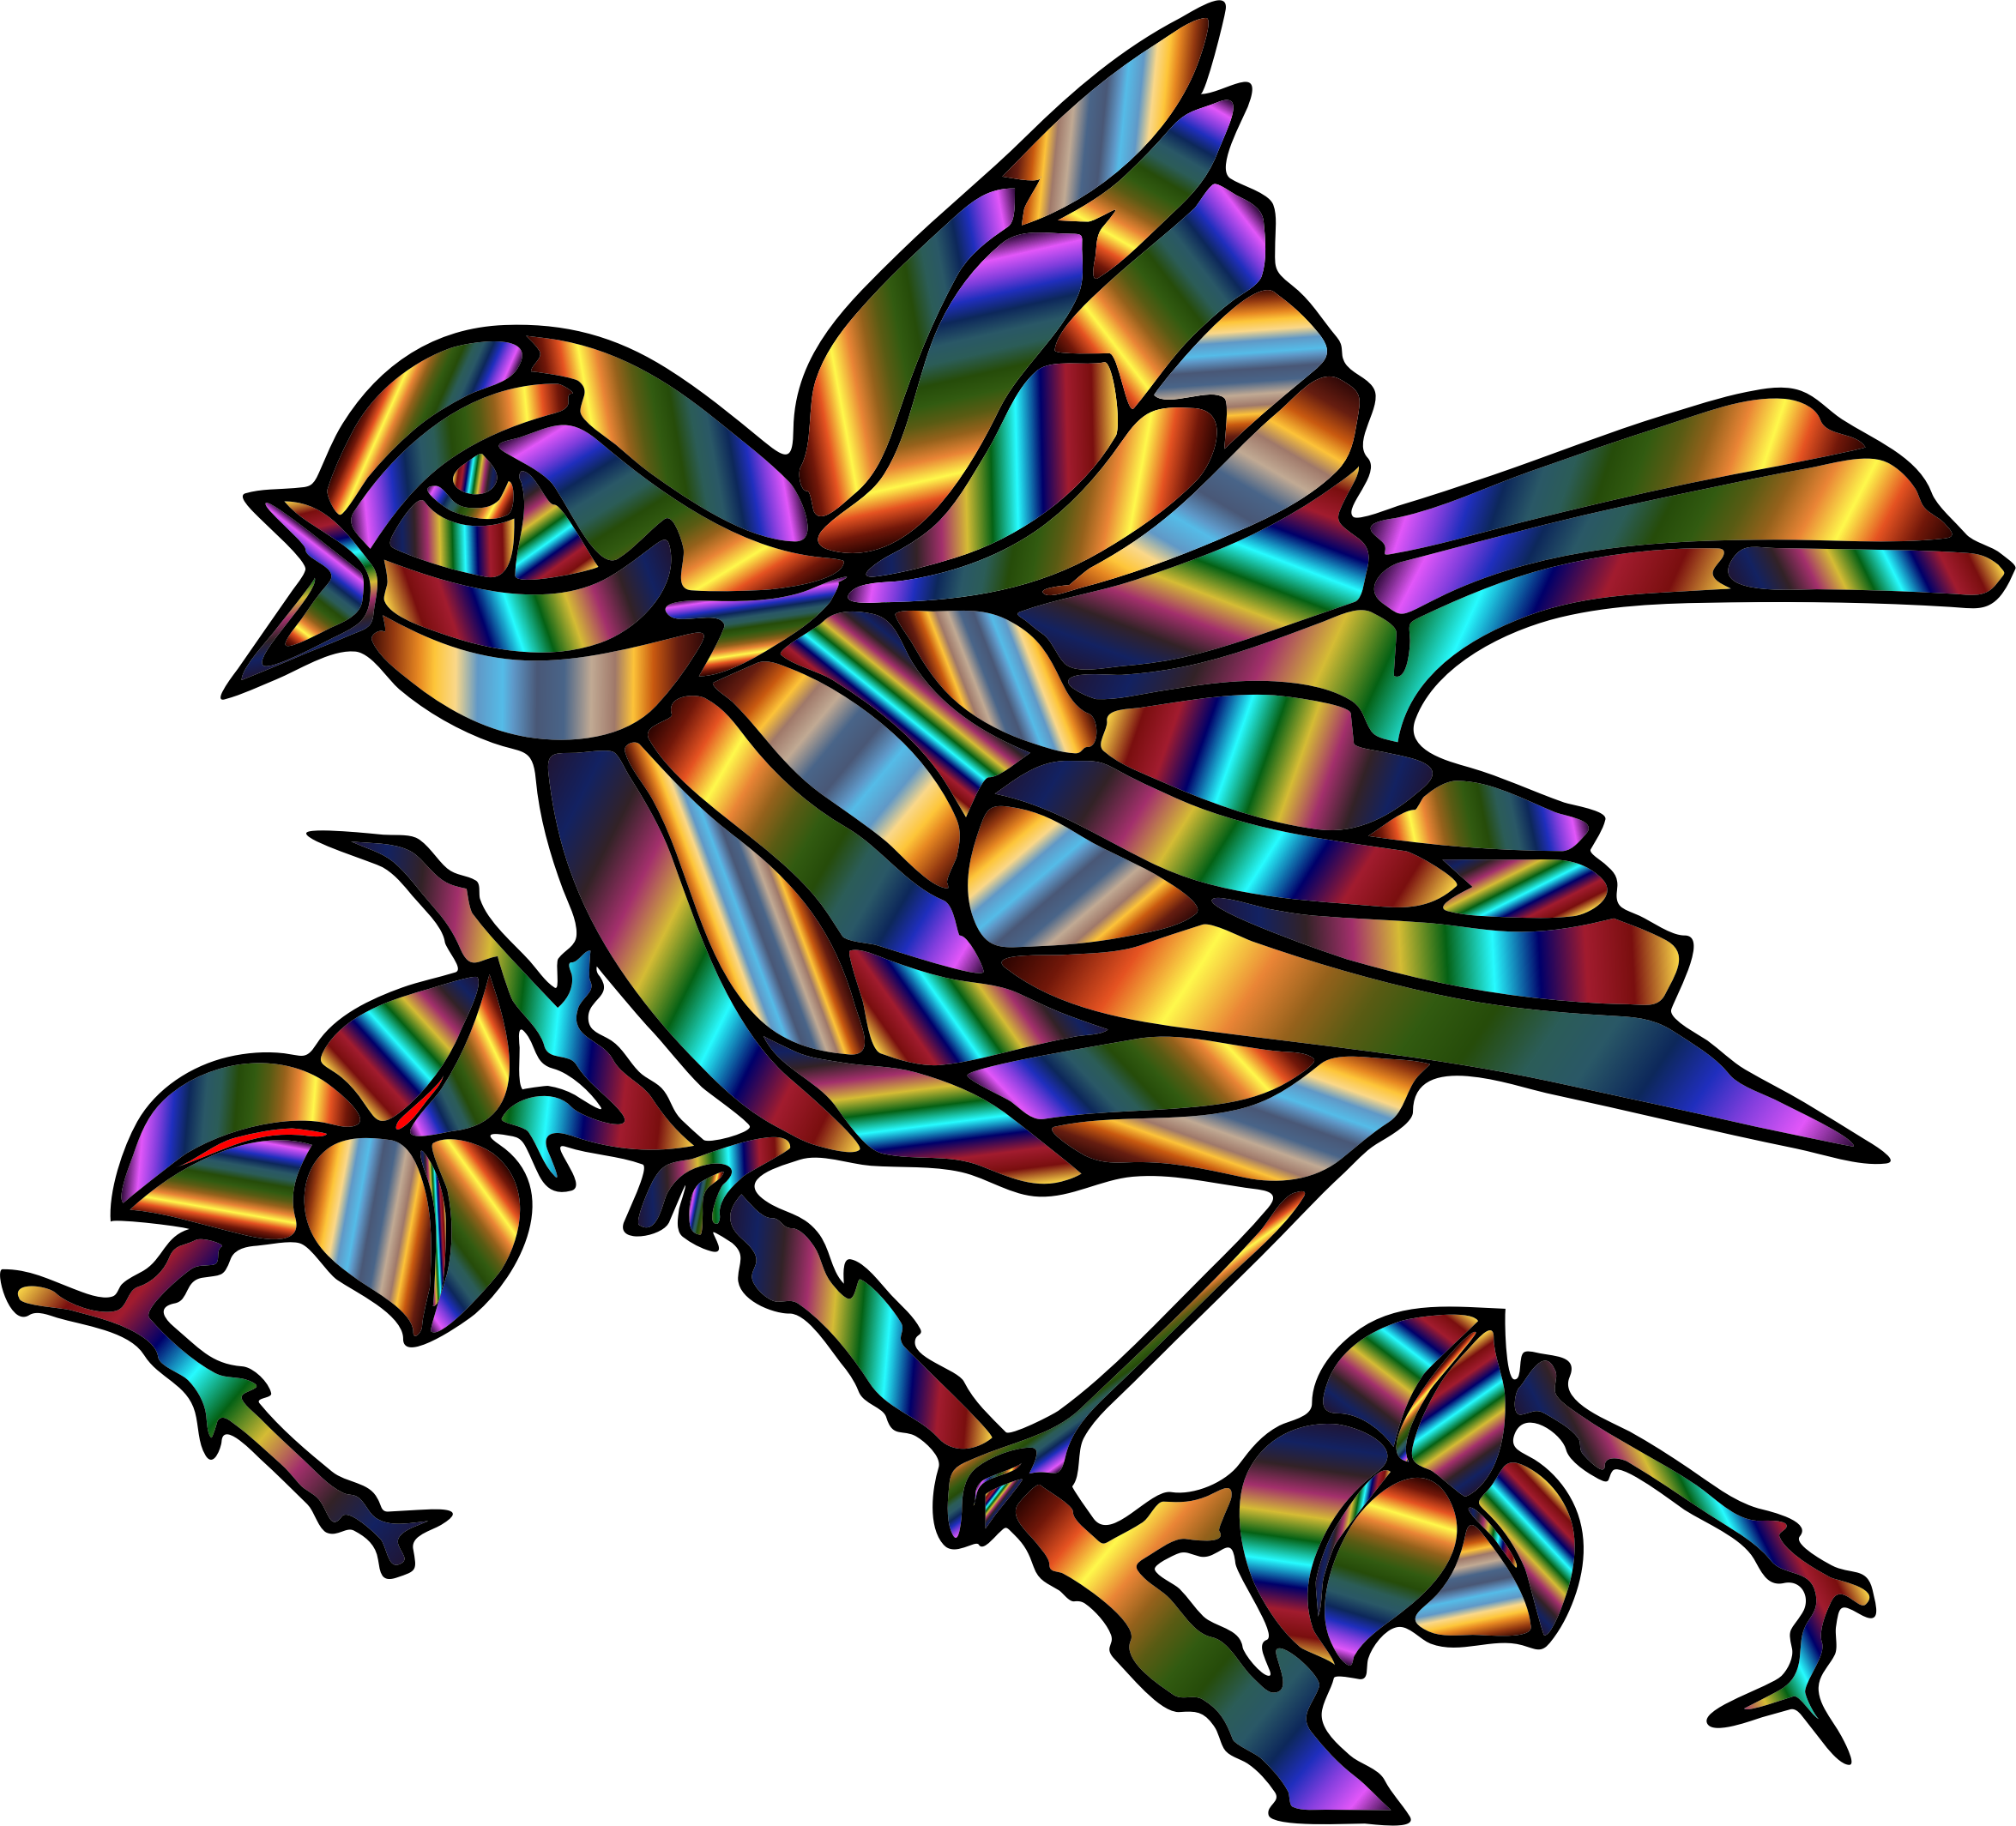 Prismatic Bird 2 by GDJ